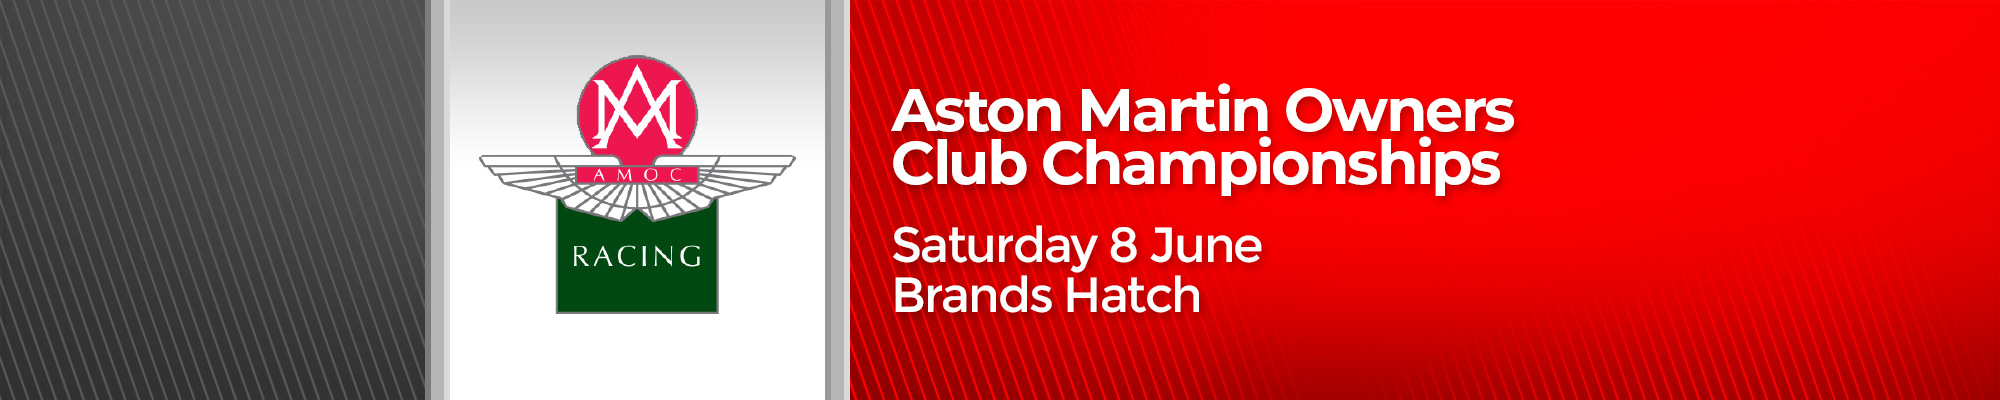 Aston Martin Owners Club Championship